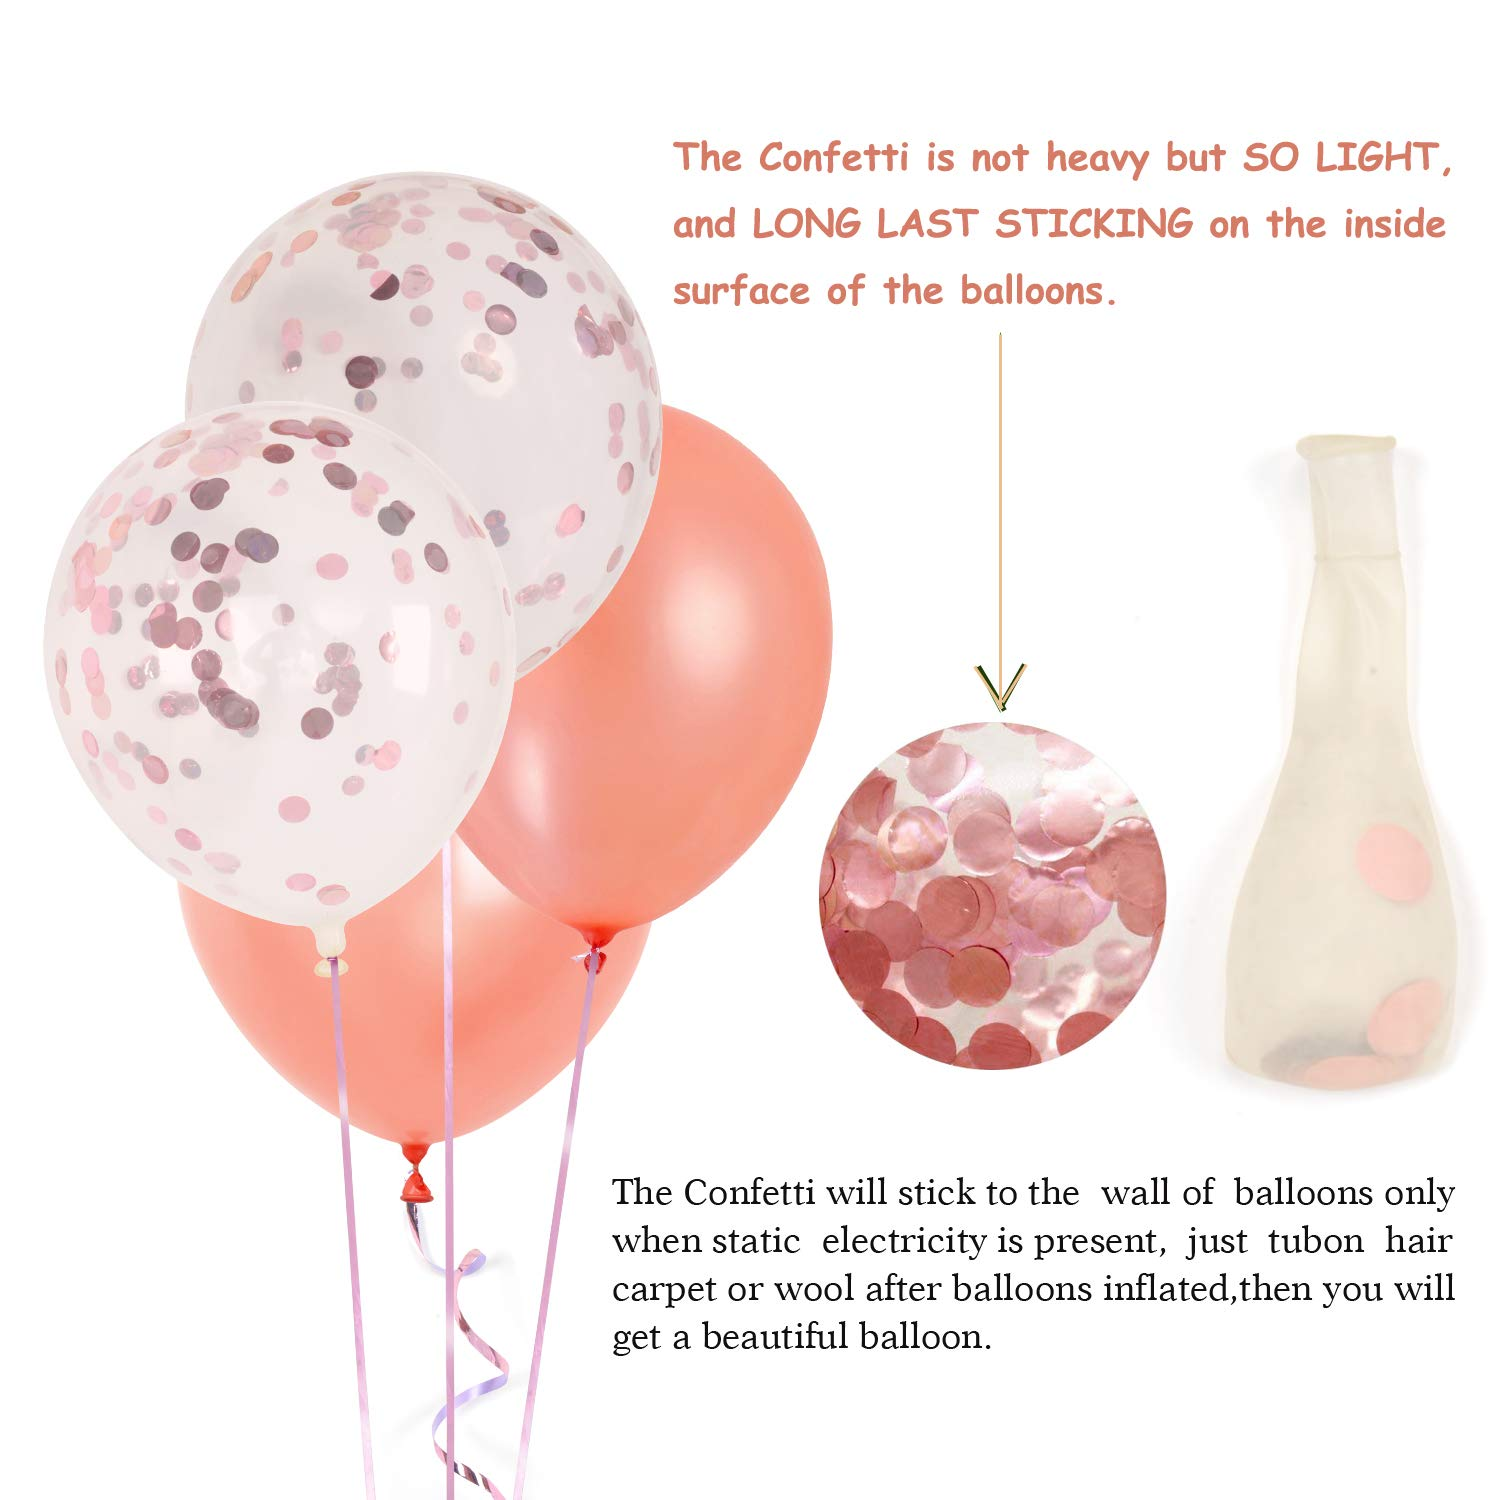 60 Pieces 12inch Rose Gold Confetti Balloon Set Including 20 Pcs Pre Filled Balloons